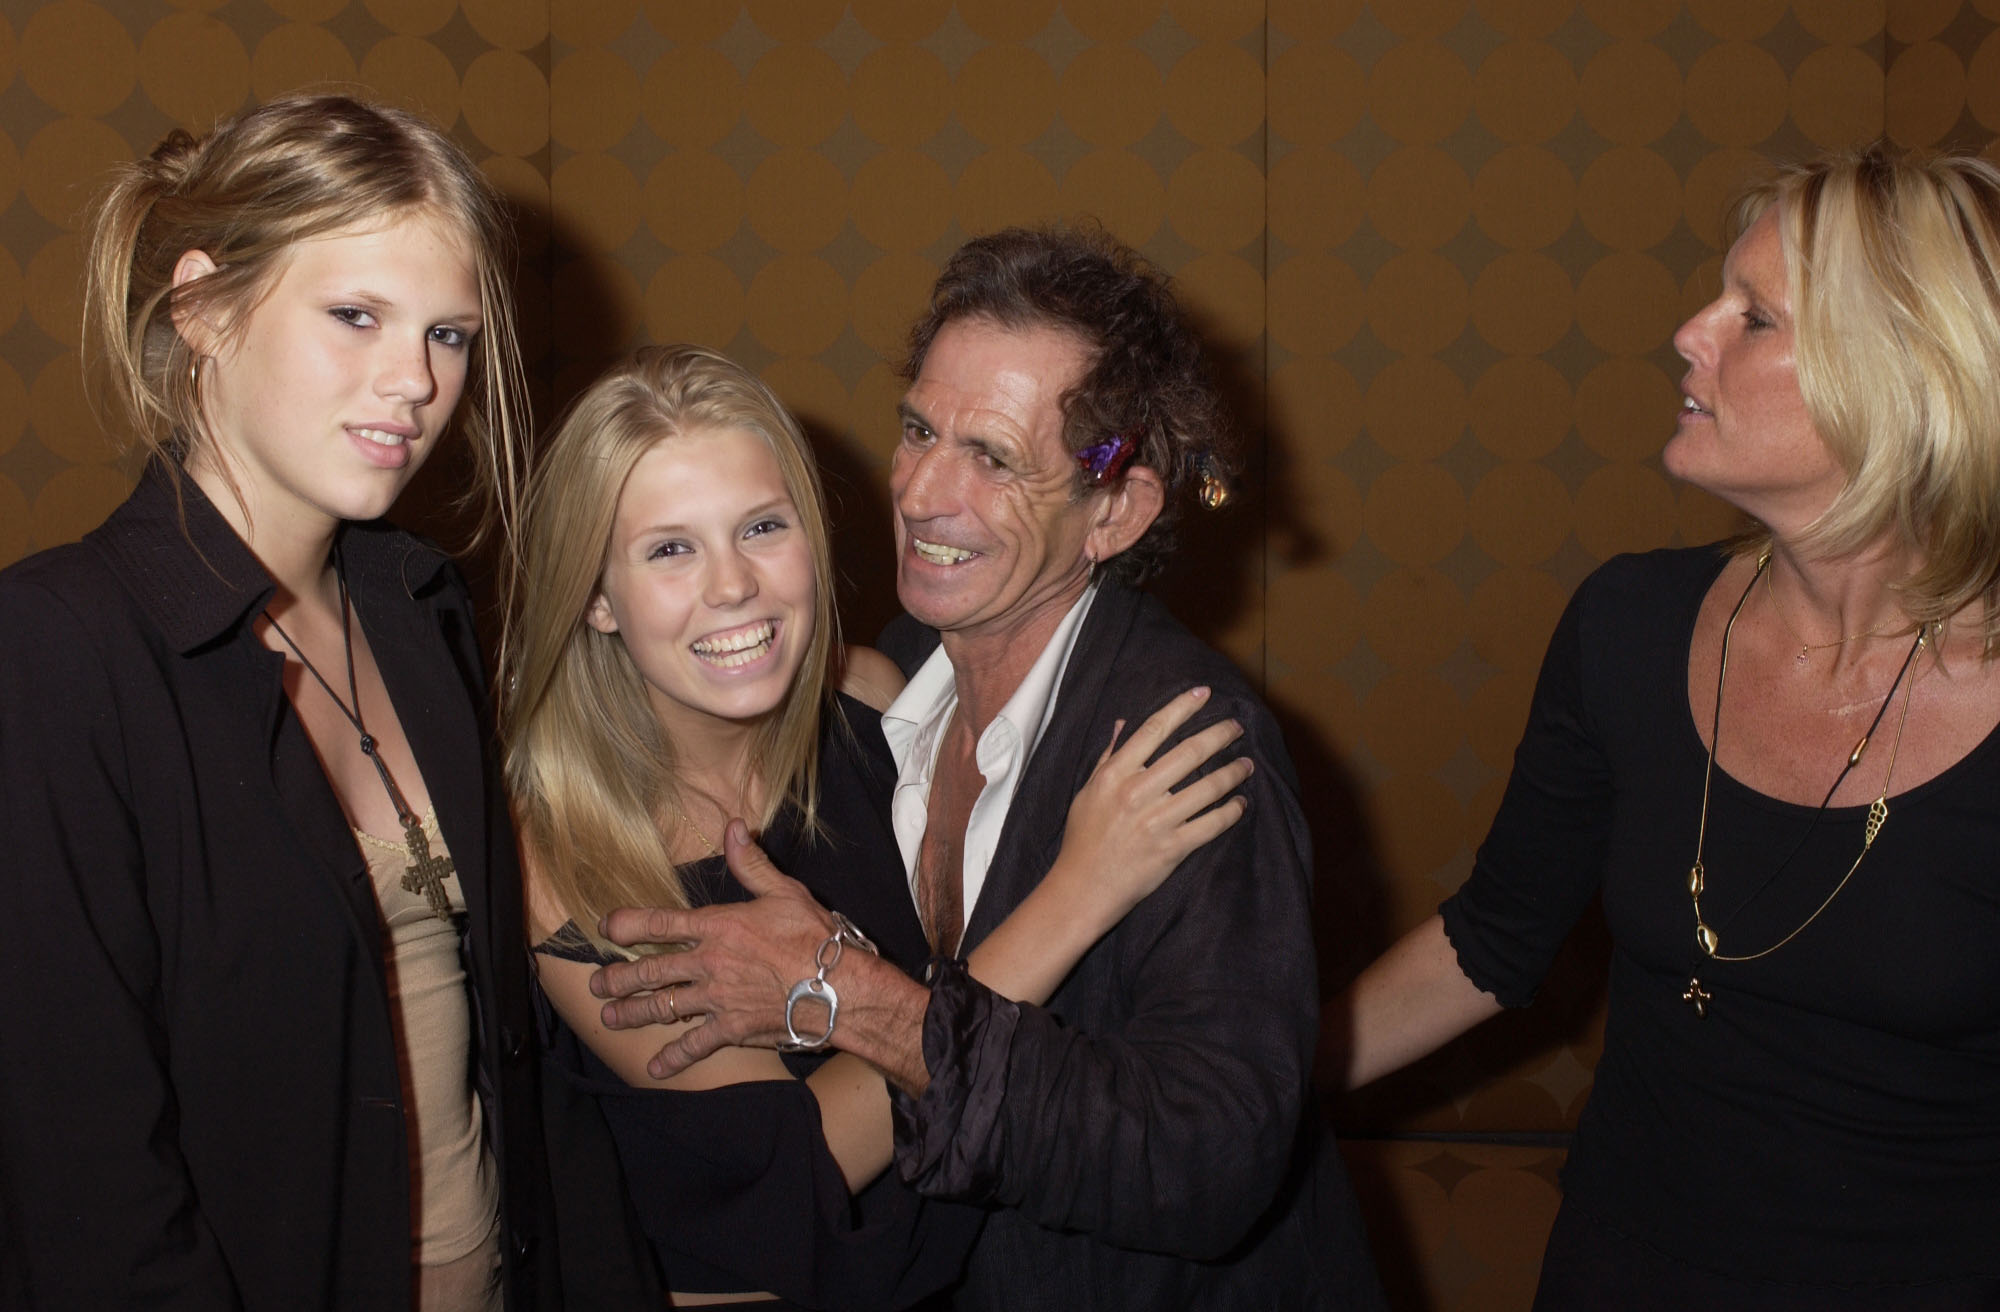 """Keith Richards and family at the post screening party  at Lotus after the New York premiere of """"Lisa Picard is Famous""""  in New York City on  August 15, 2001.  photo by Gabe Palacio/ImageDirect"""